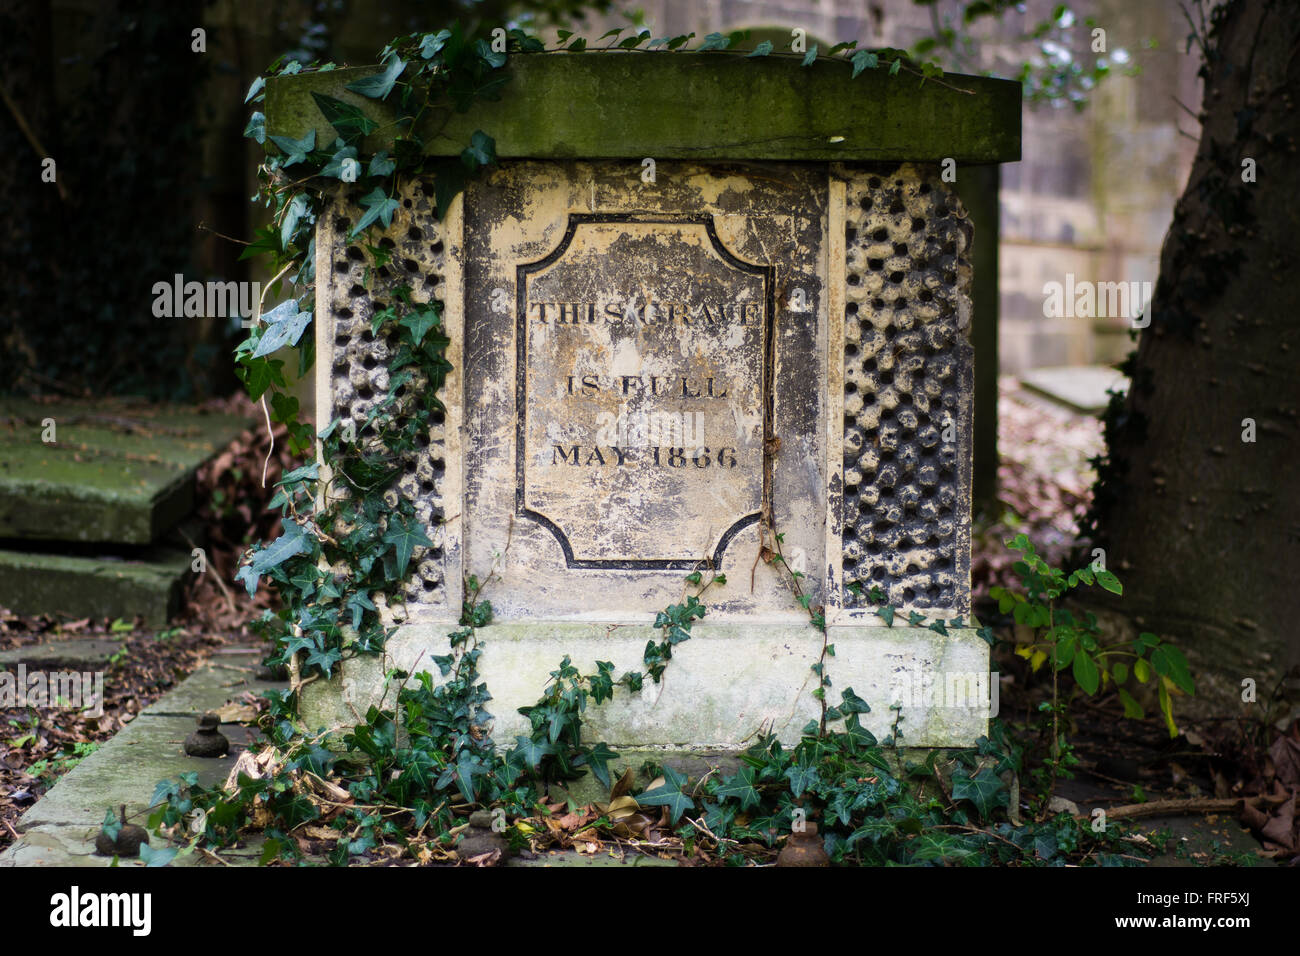 'This Grave is Full' inscribed on a tomb. Unusual wording on the side of a grave, written in 1866, in a - Stock Image